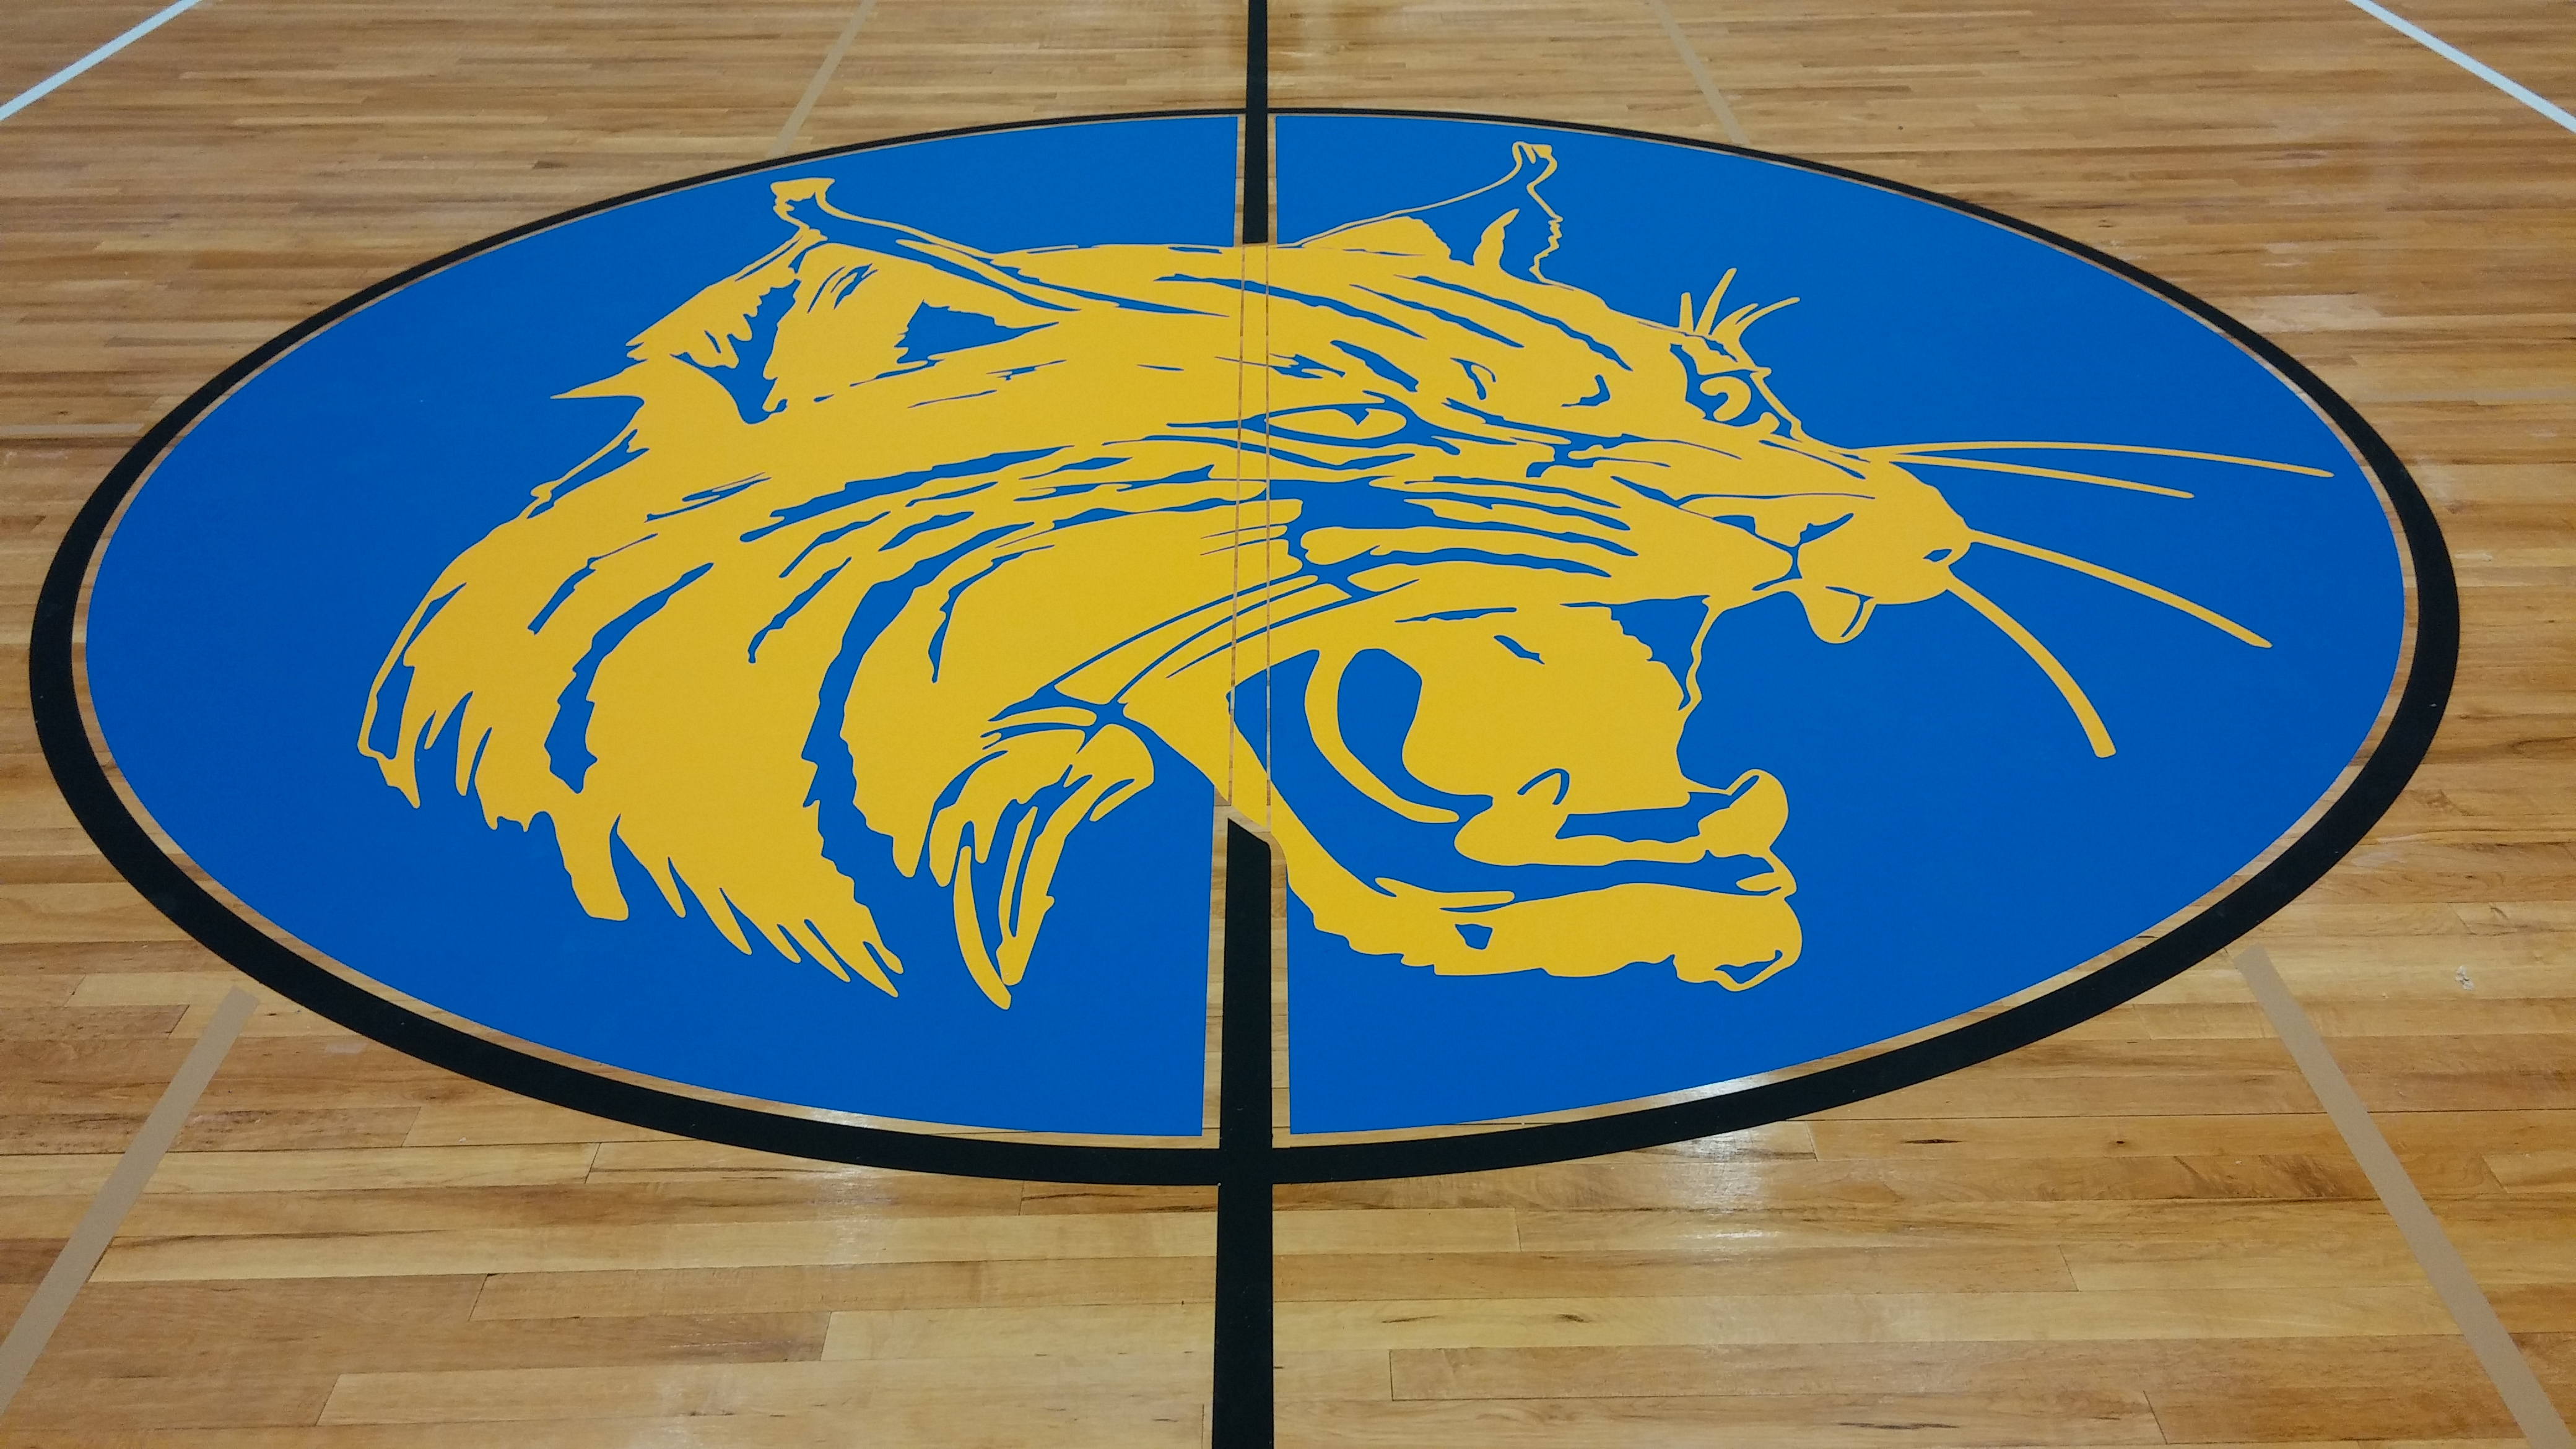 Logo - Wildcat - Brookfield CT.JPG